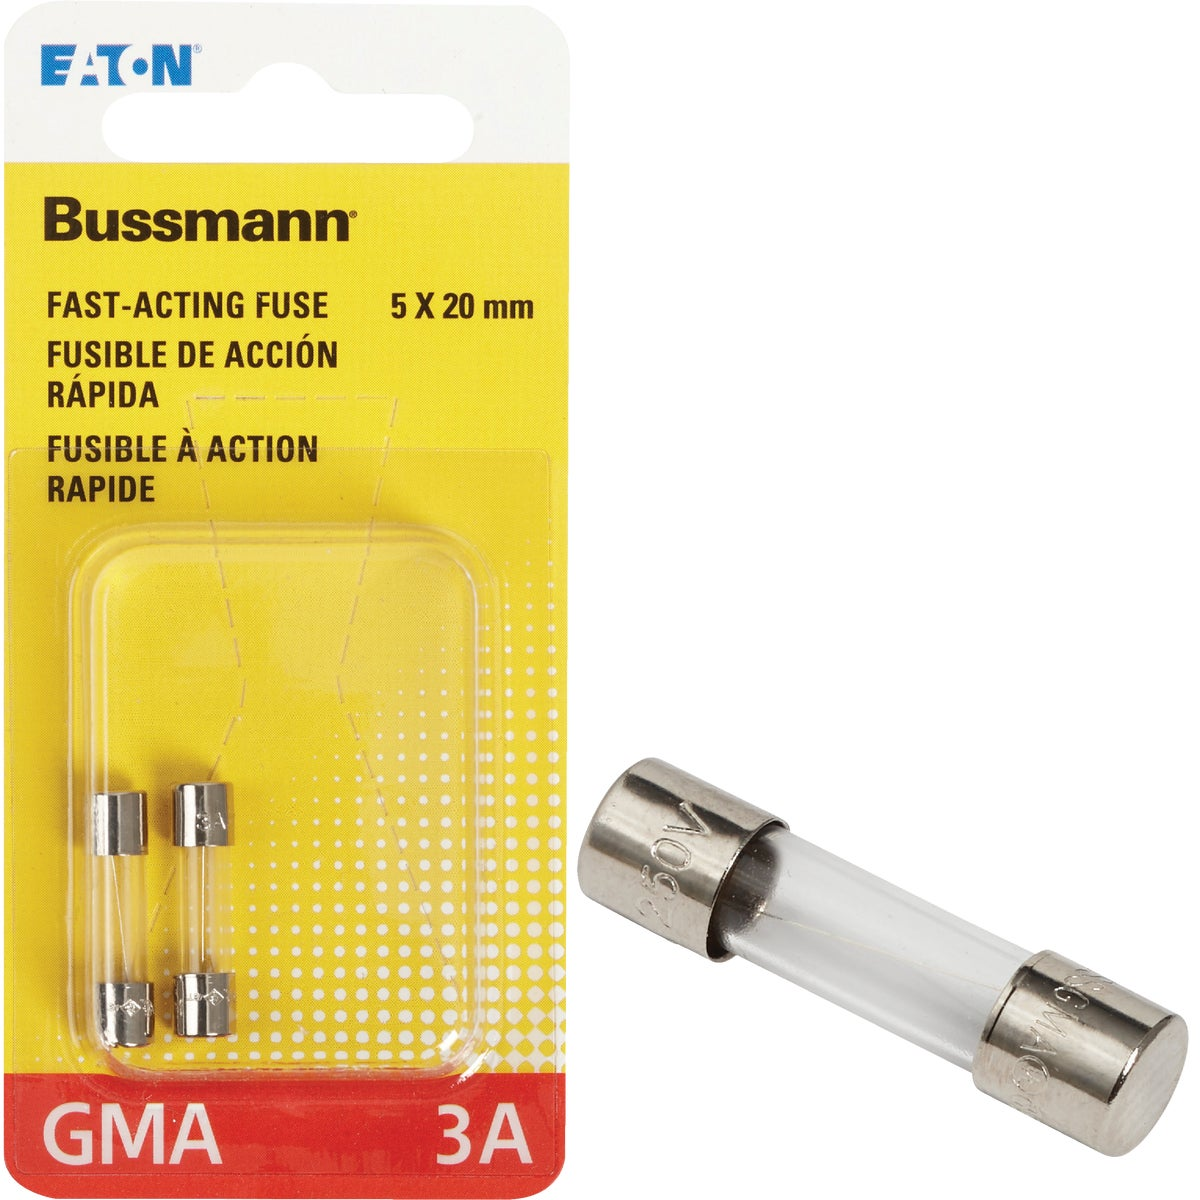 3A FAST ACTING FUSE - BP/GMA-3A by Bussmann Cooper